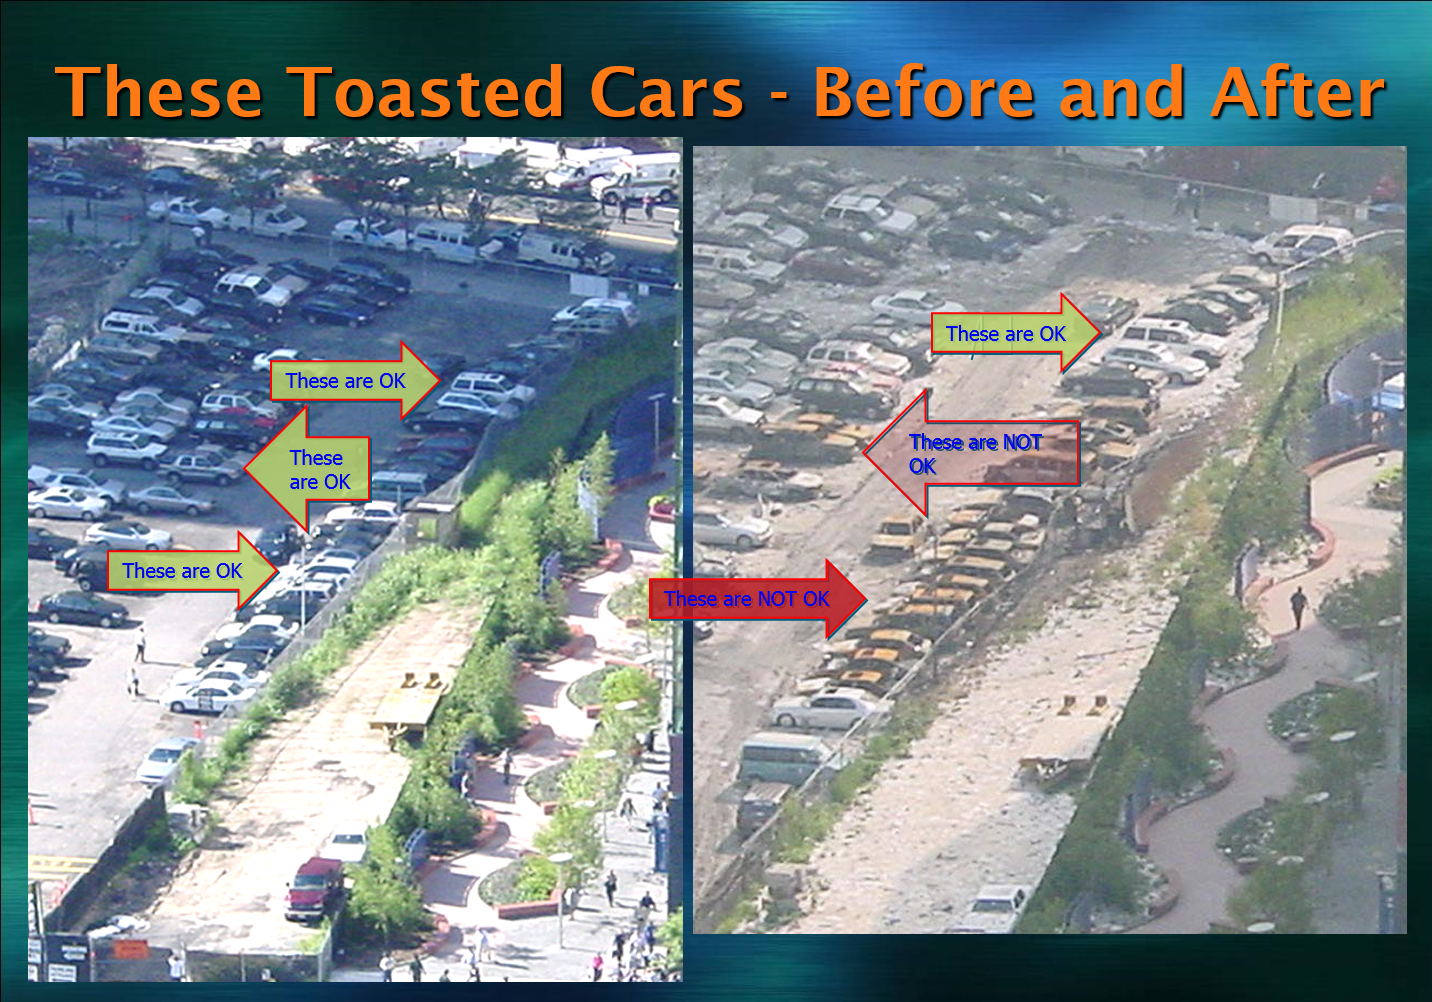 Toasted Cars in a Parking Lot